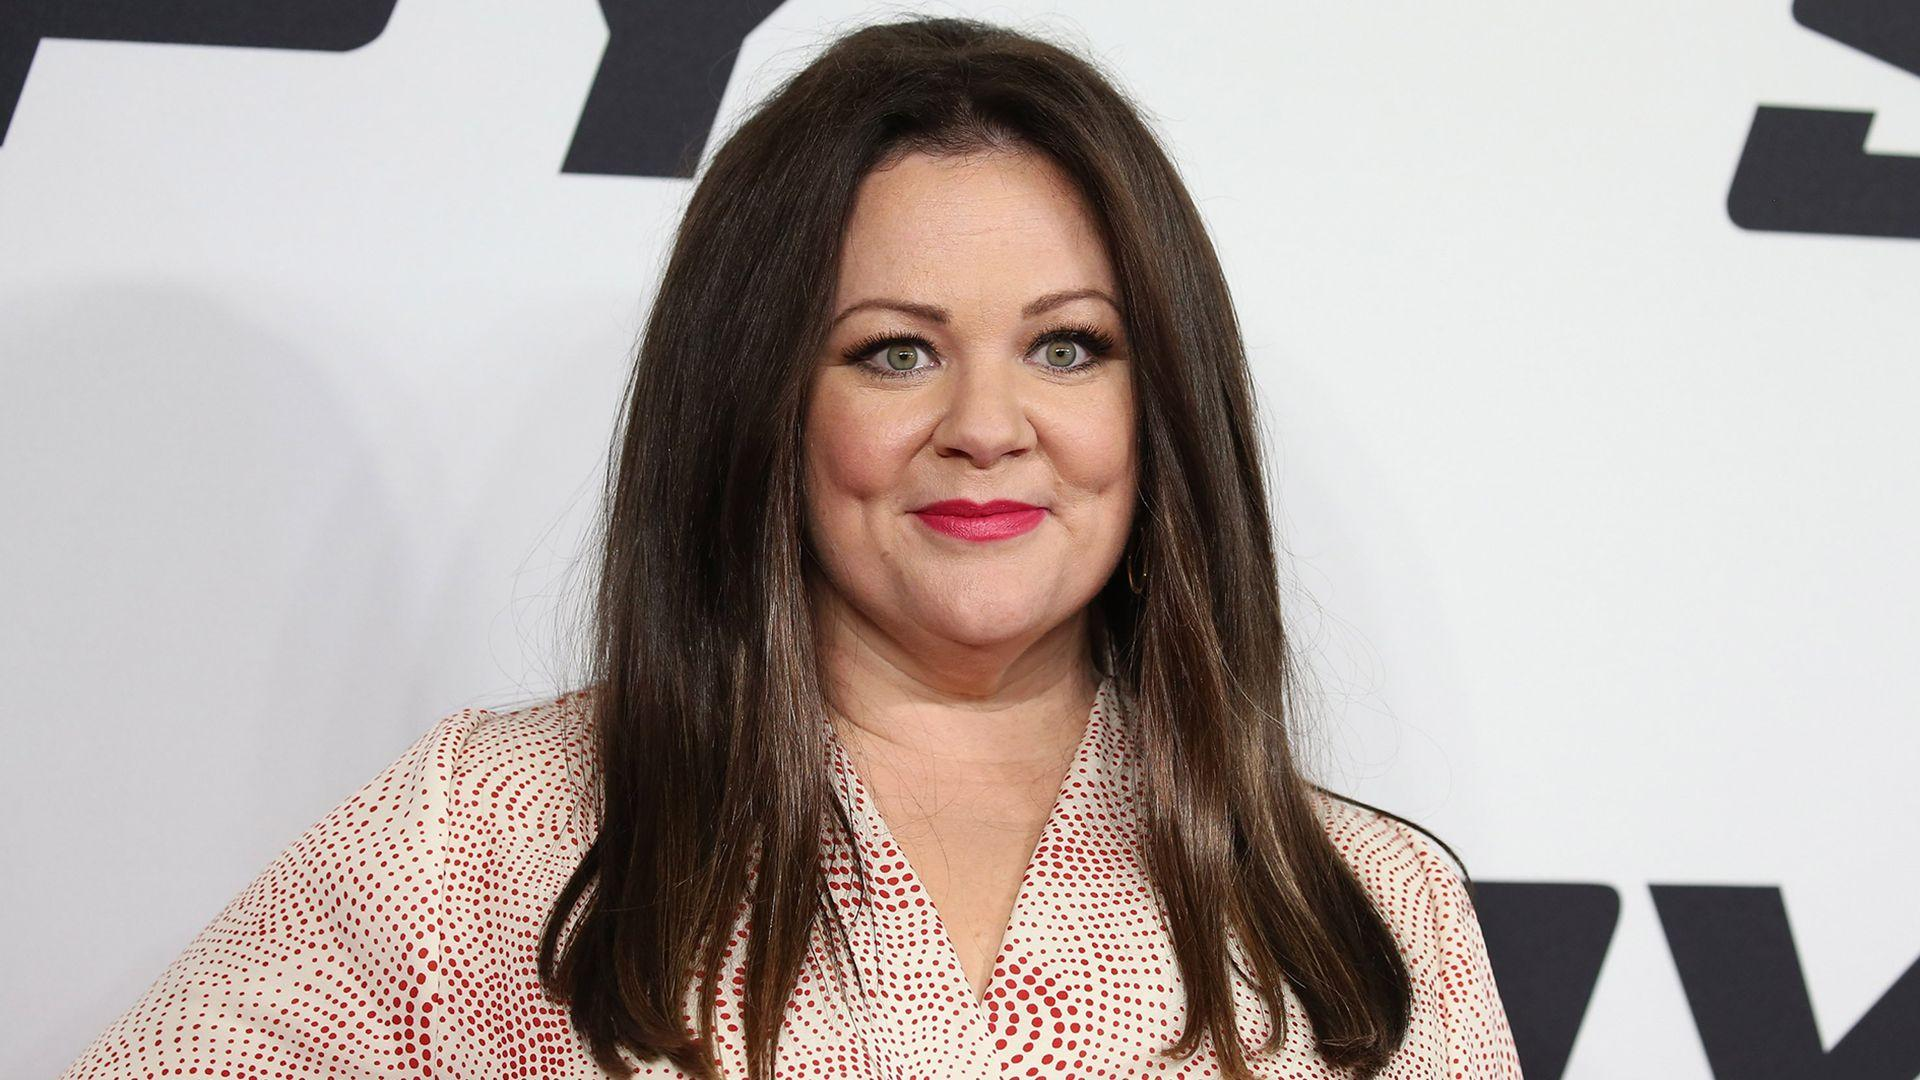 Melissa McCarthy wears own design on 'Spy' red carpet